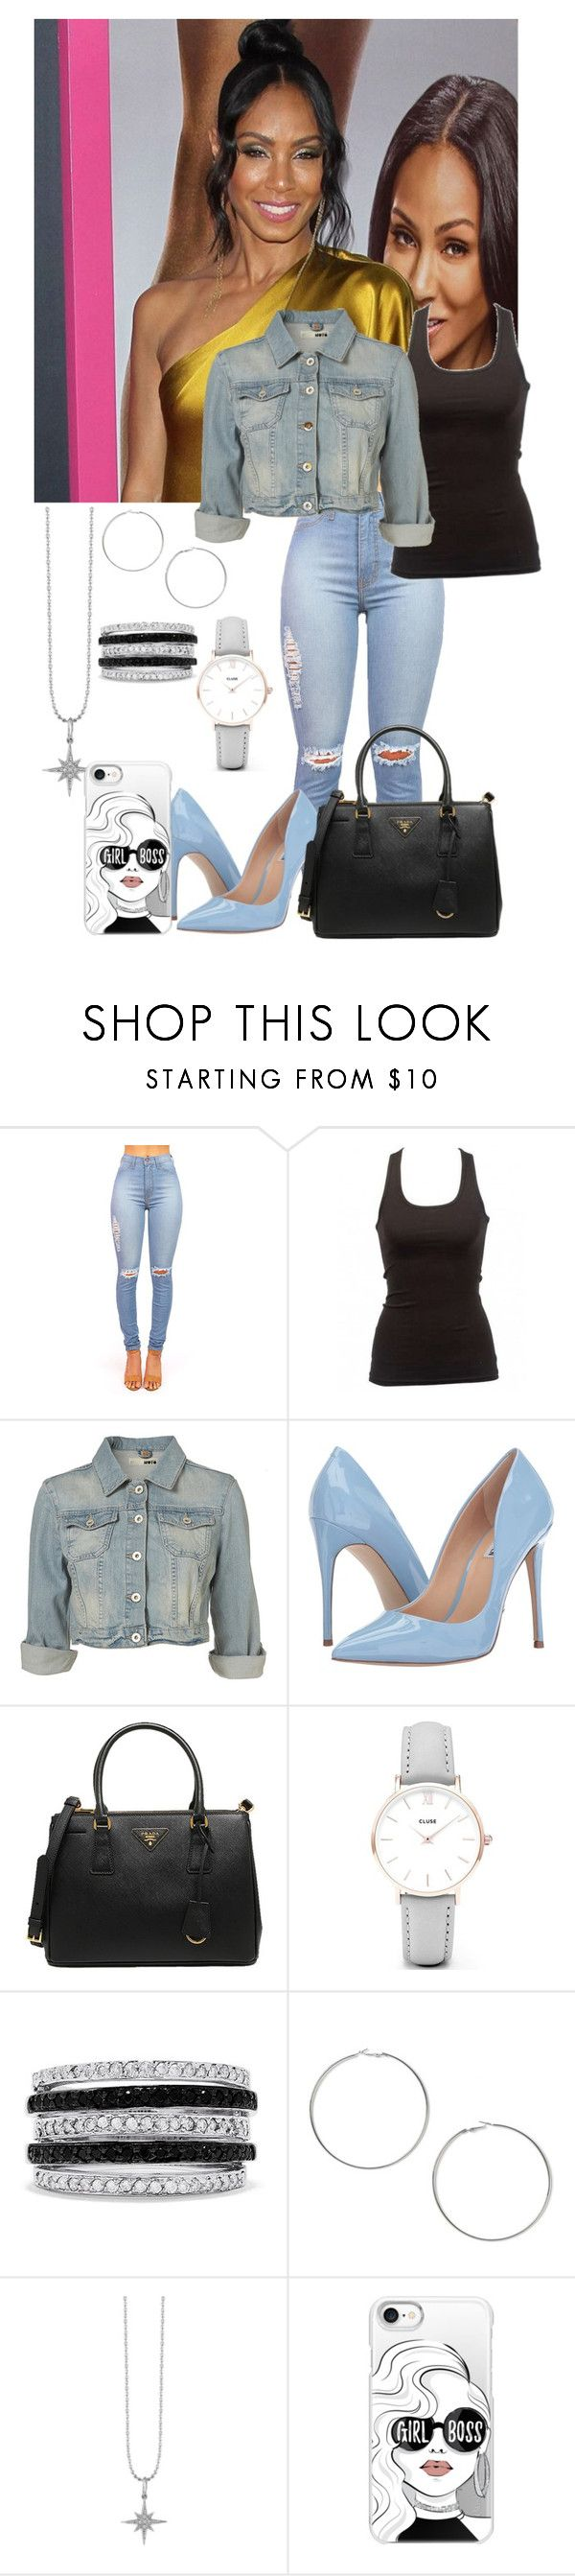 """""""Tryna Catch Me like El Chapo"""" by i-be-romania143 ❤ liked on Polyvore featuring Steve Madden, Prada, CLUSE, Effy Jewelry, Miss Selfridge, Sydney Evan and Casetify"""